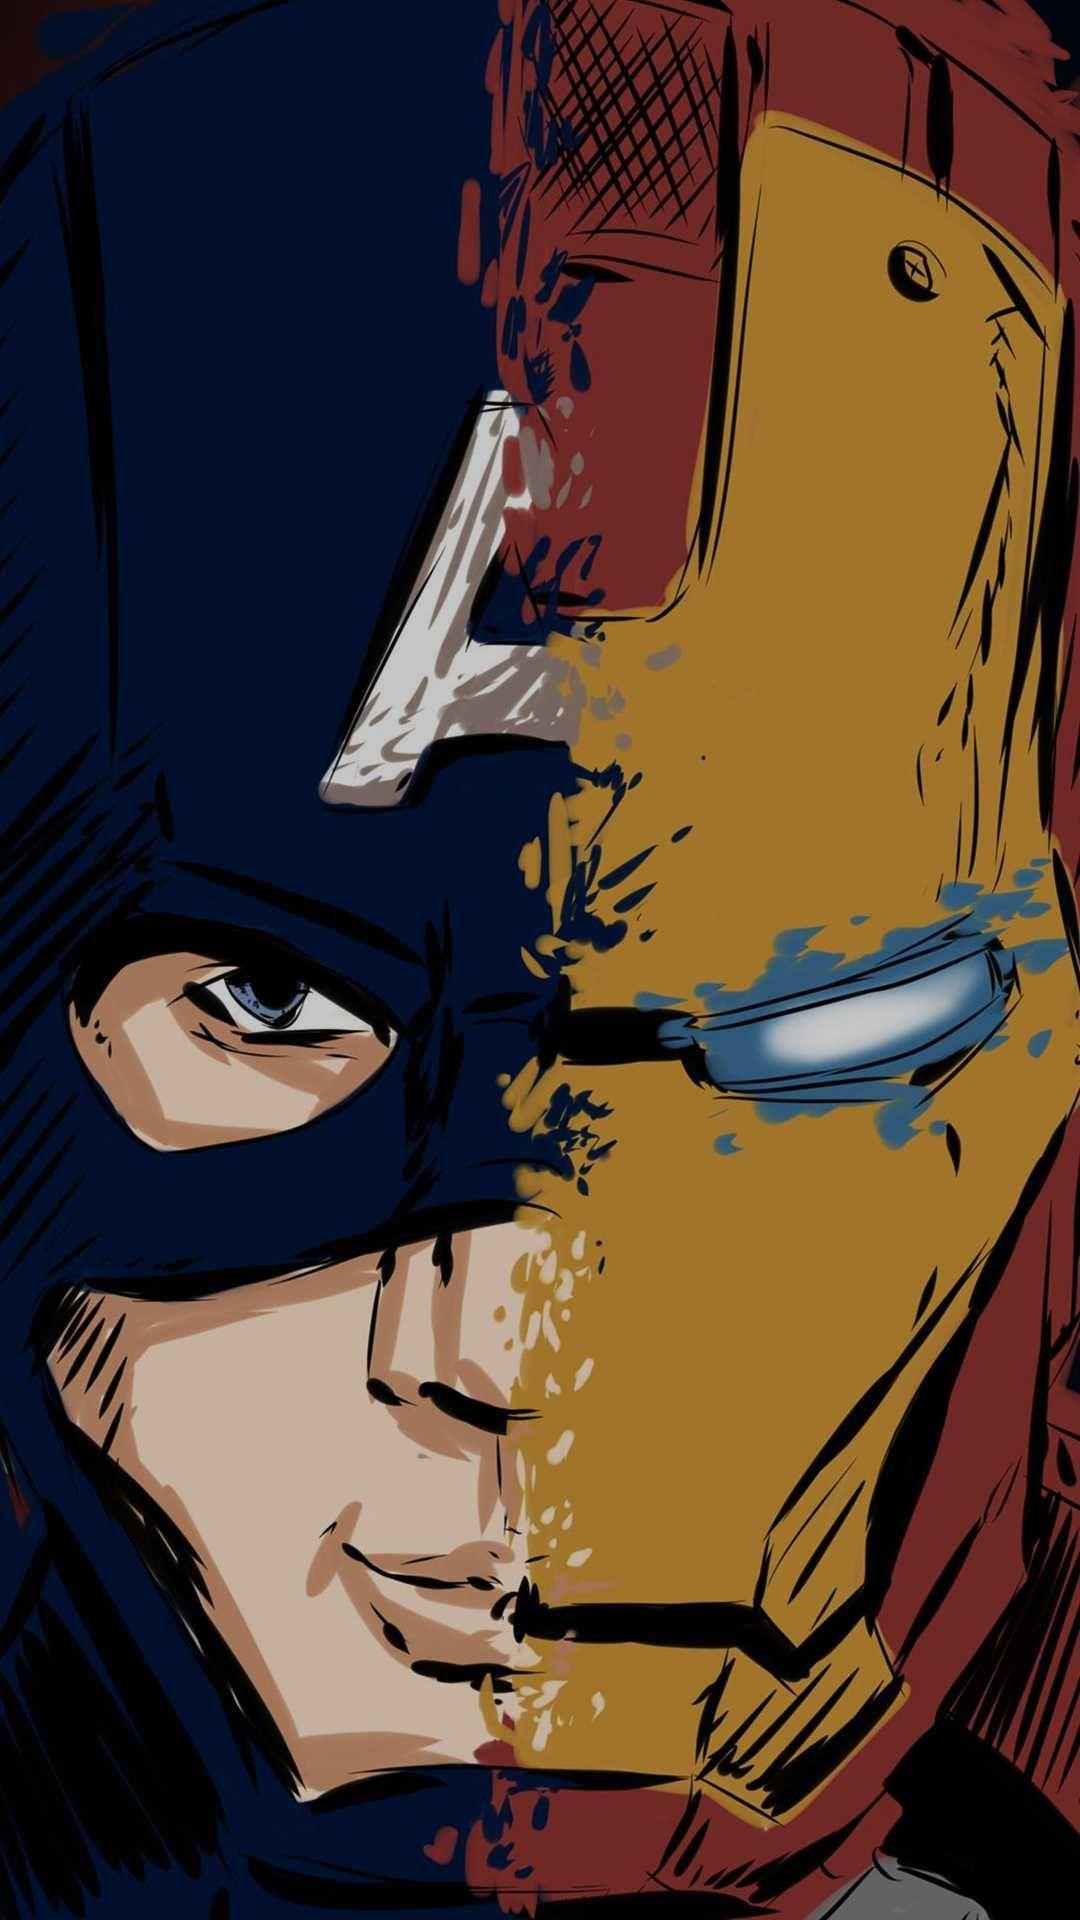 Iron Man Captain America Iphone Wallpaper Marvel Wallpaper Hd Captain America Wallpaper Iron Man Vs Captain America